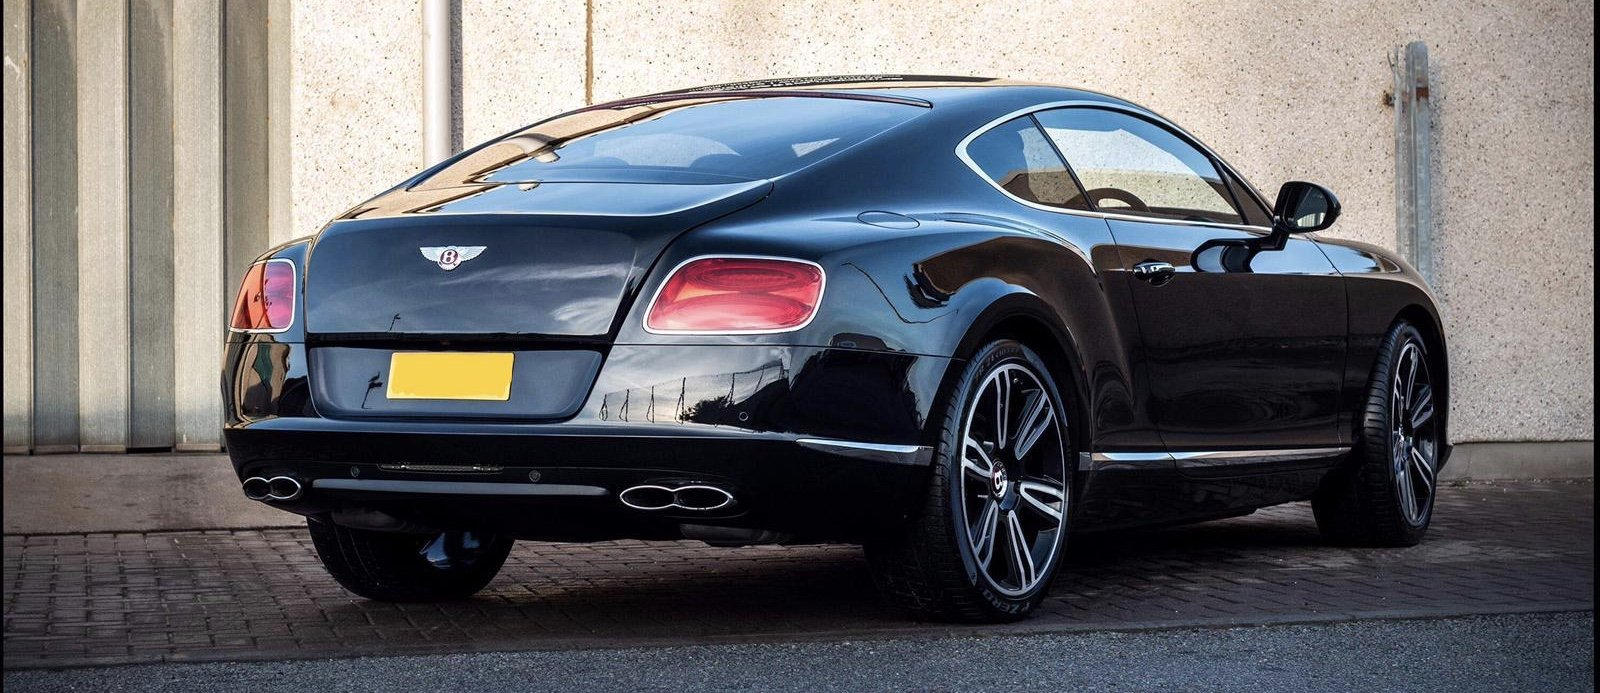 2013 Bentley Continental GT V8 (63) For Sale (picture 3 of 6)